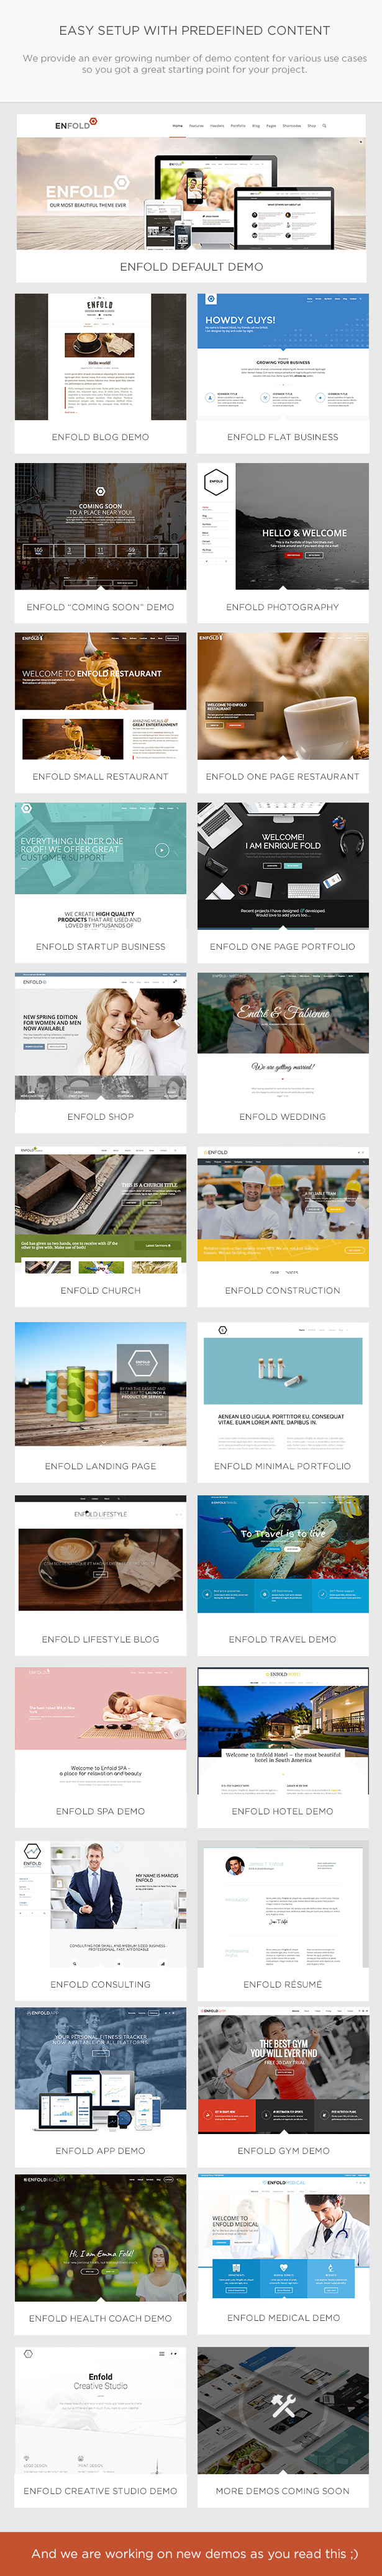 Enfold - Responsive Multi-Purpose Theme - 5